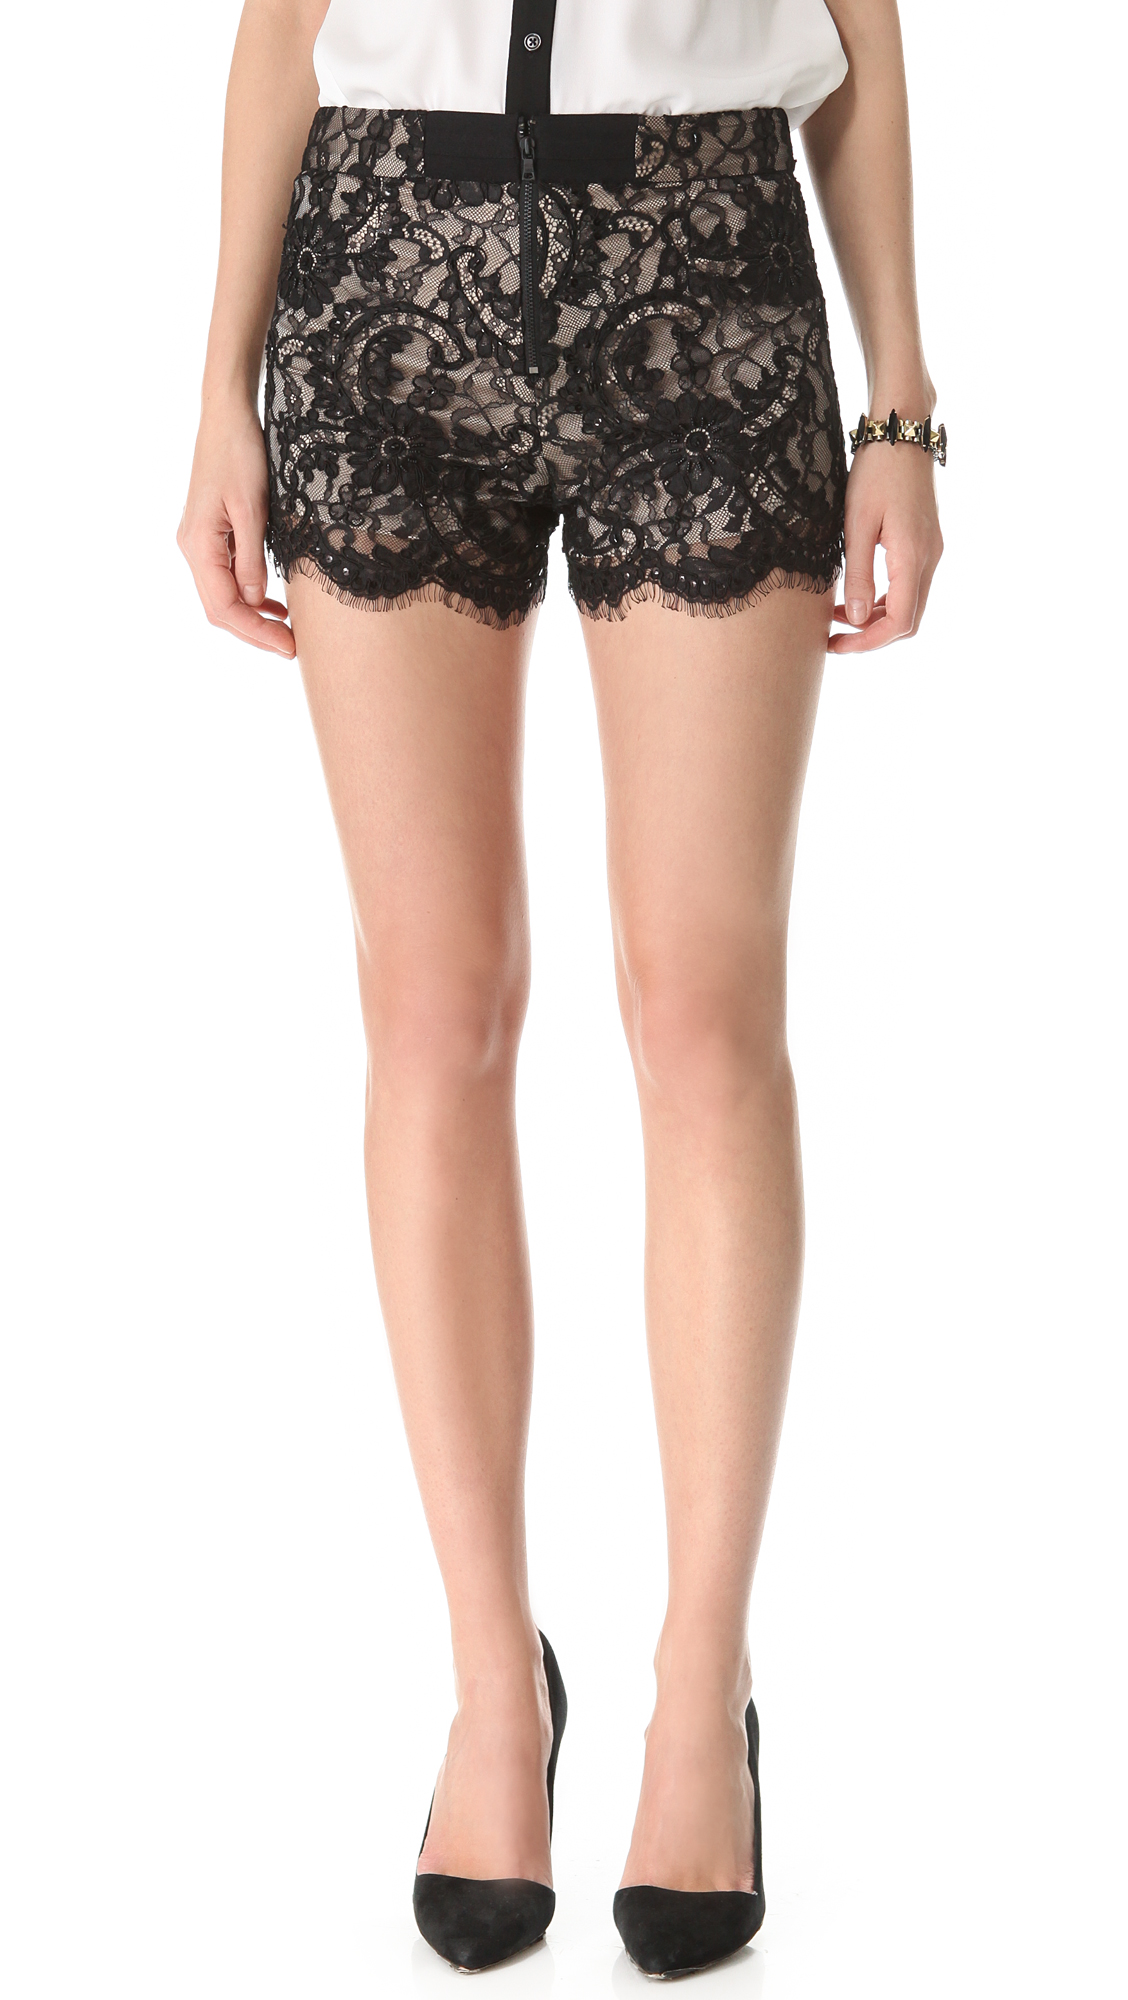 Alice + Olivia High Waisted Lace Shorts in Black